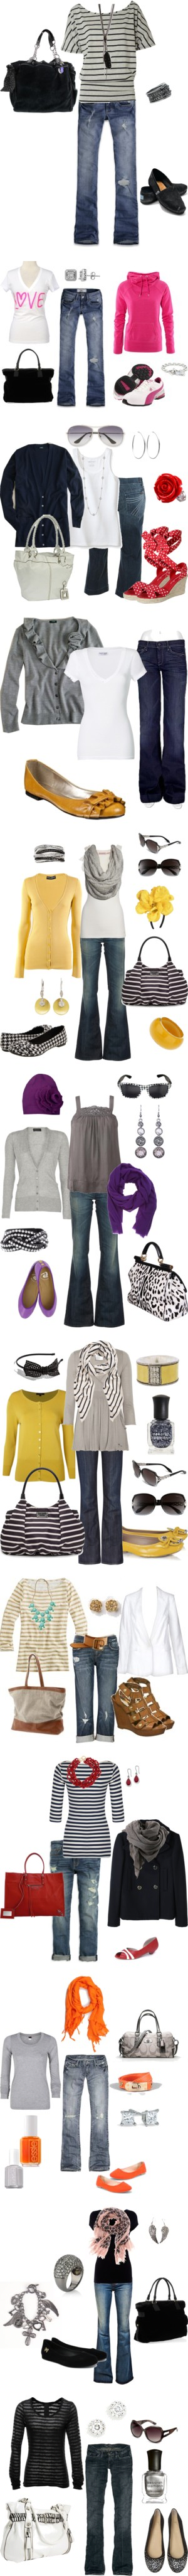 """""""My Style 3"""" by melissa-fry ❤ liked on Polyvore"""